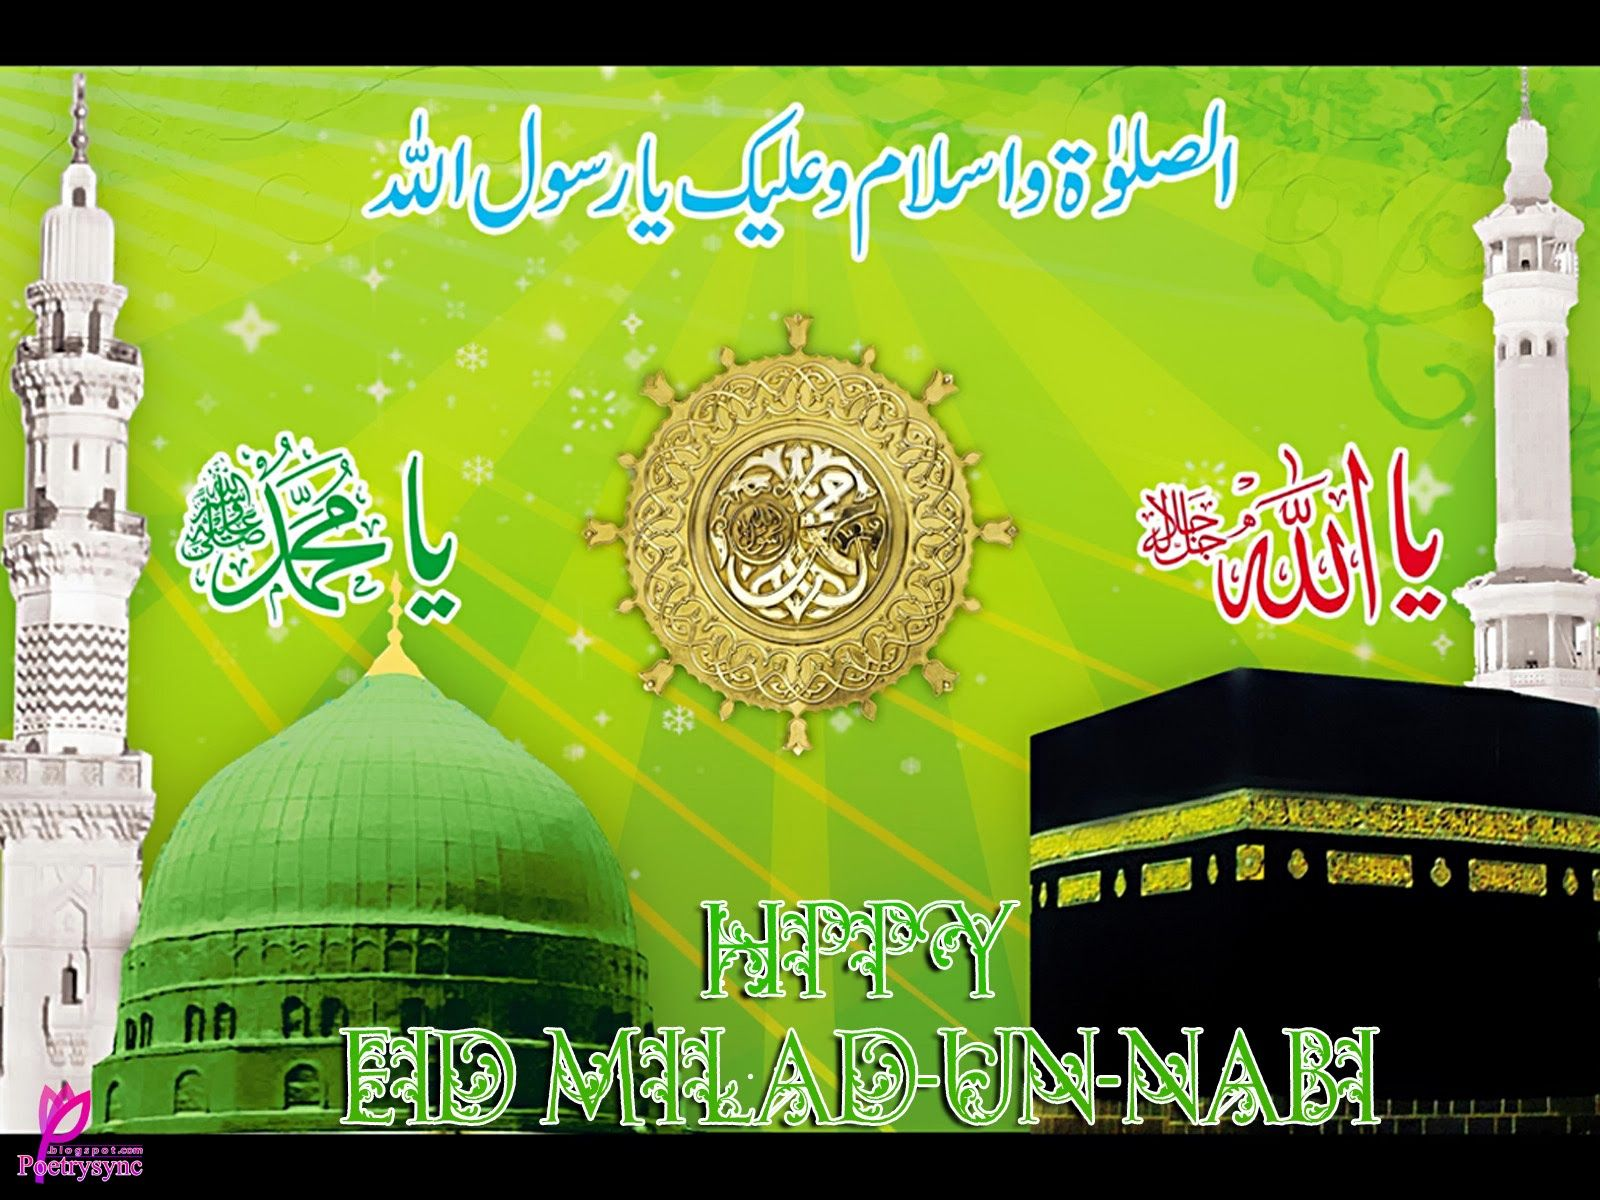 Happy eid milad un nabi greetings card picture wallpaper eid milad happy eid milad un nabi greetings card picture wallpaper m4hsunfo